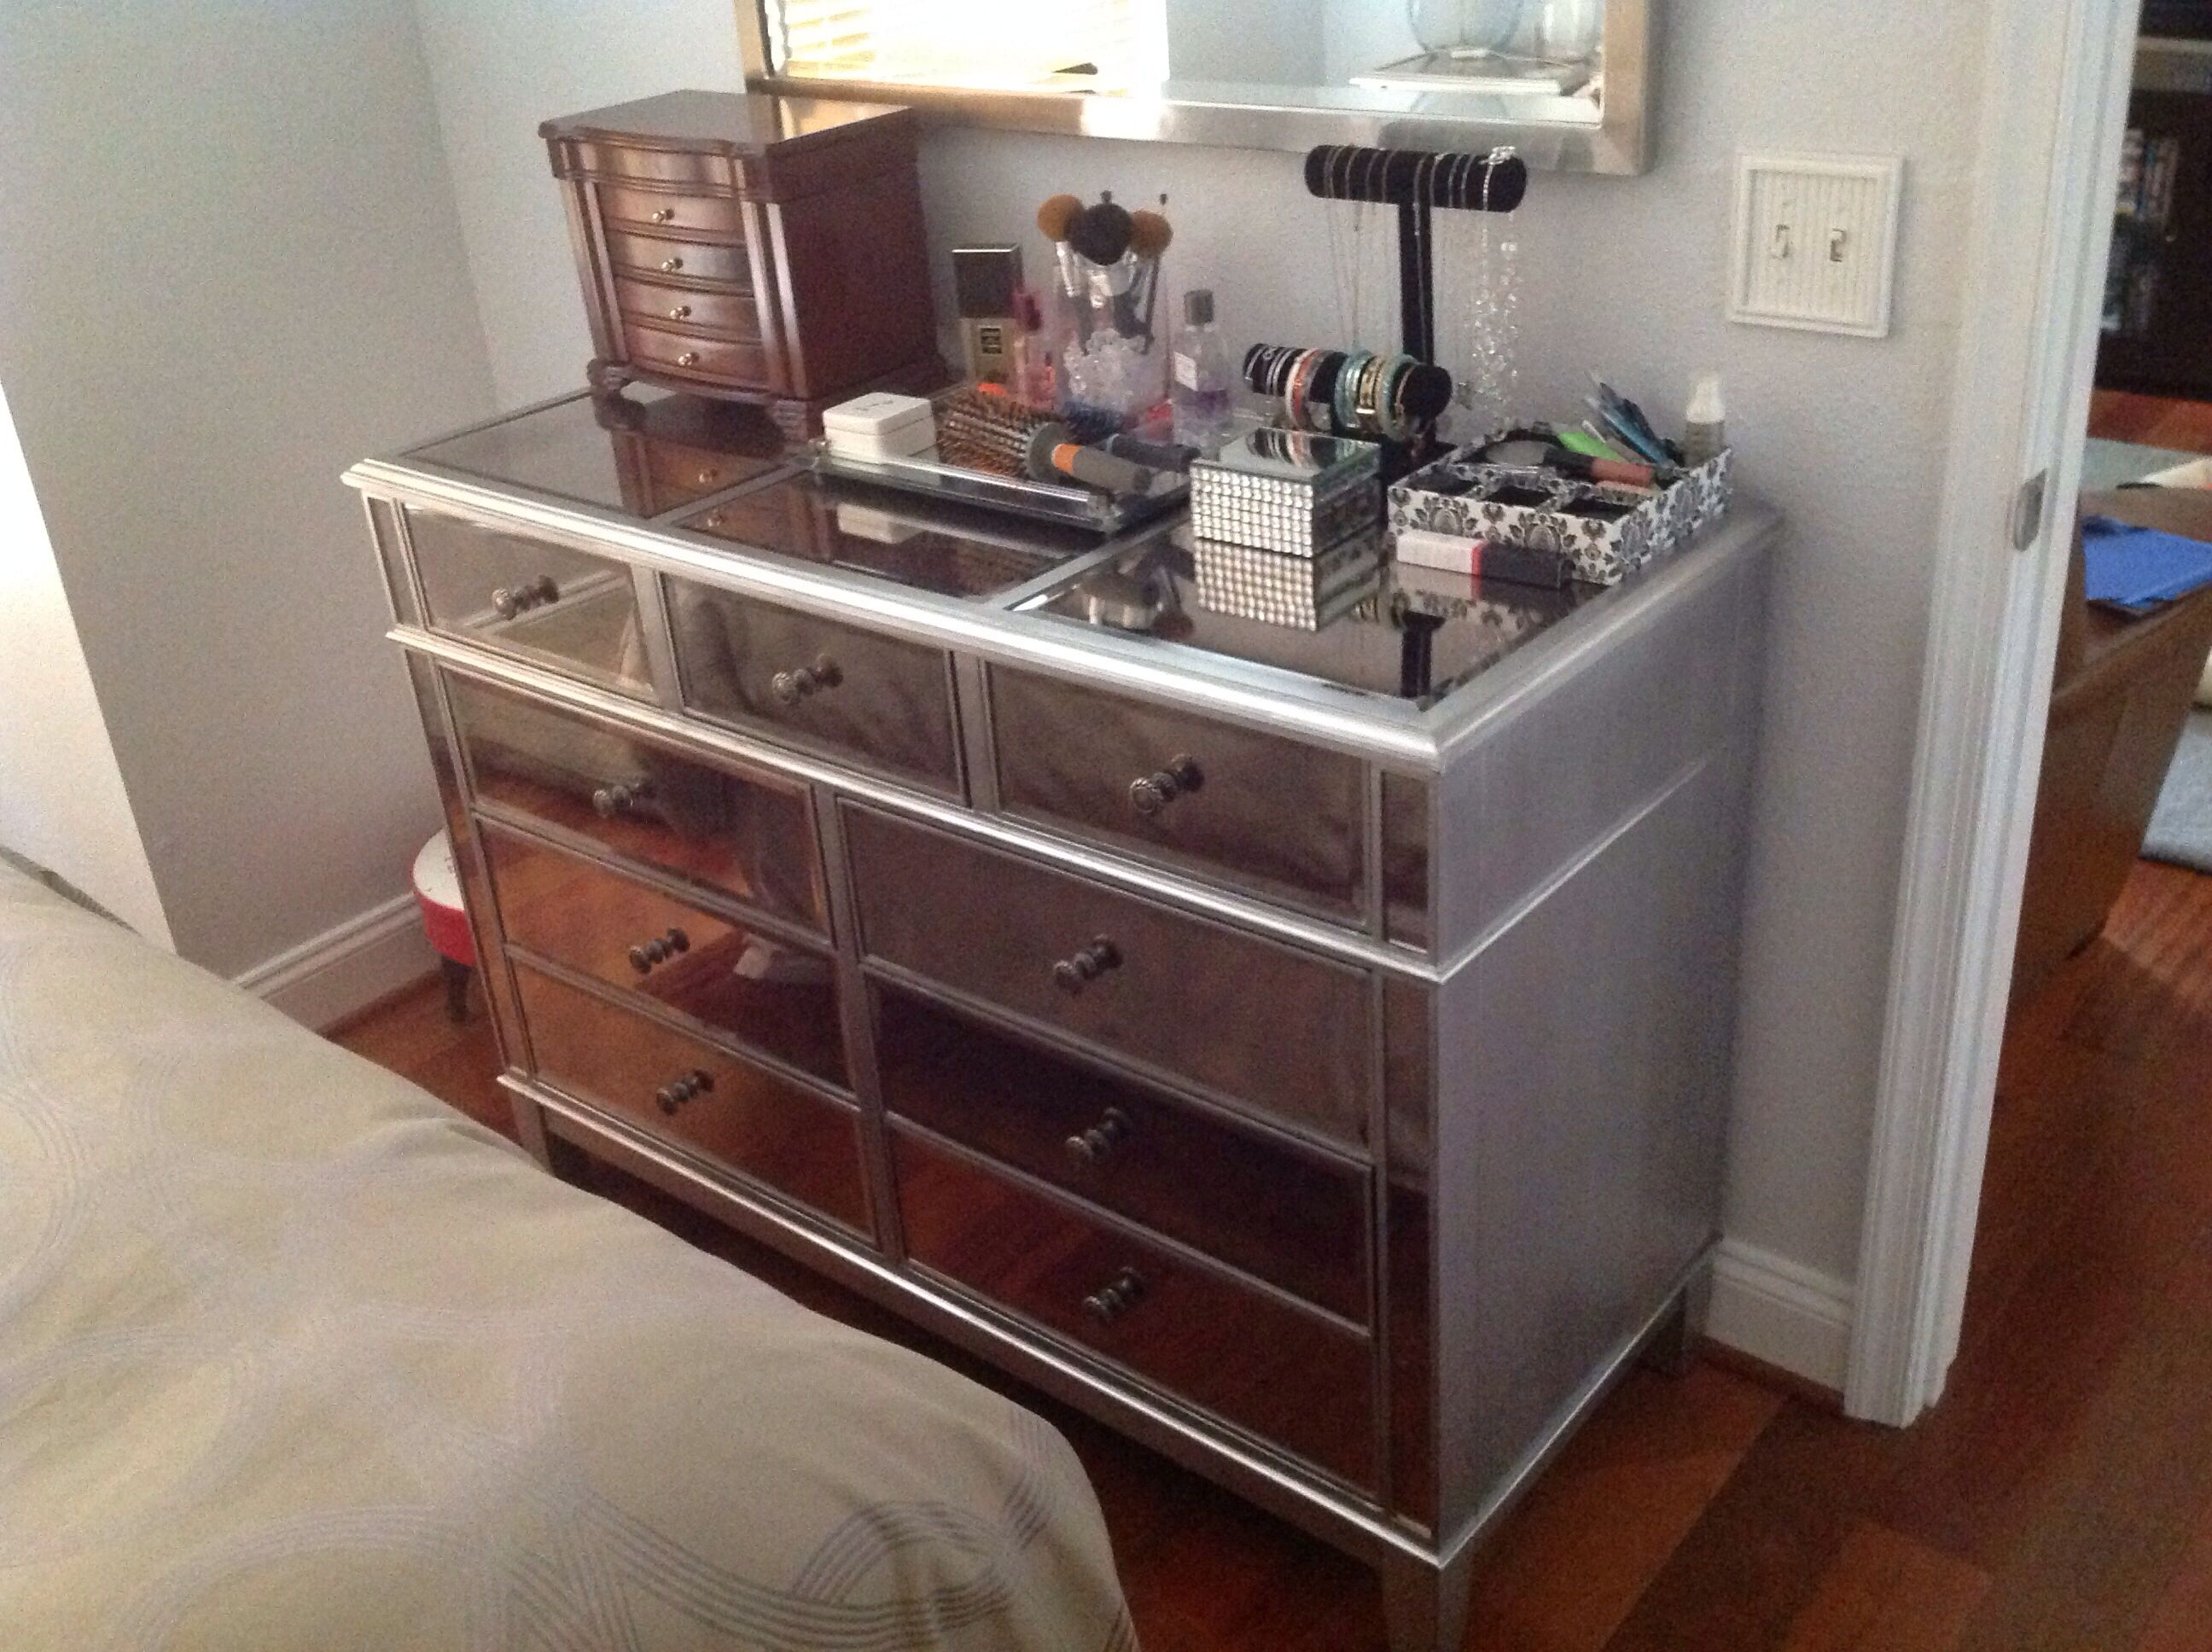 hayworth furniture collection. My New Mirrored Dresser - Hayworth Collection. Furniture Collection S